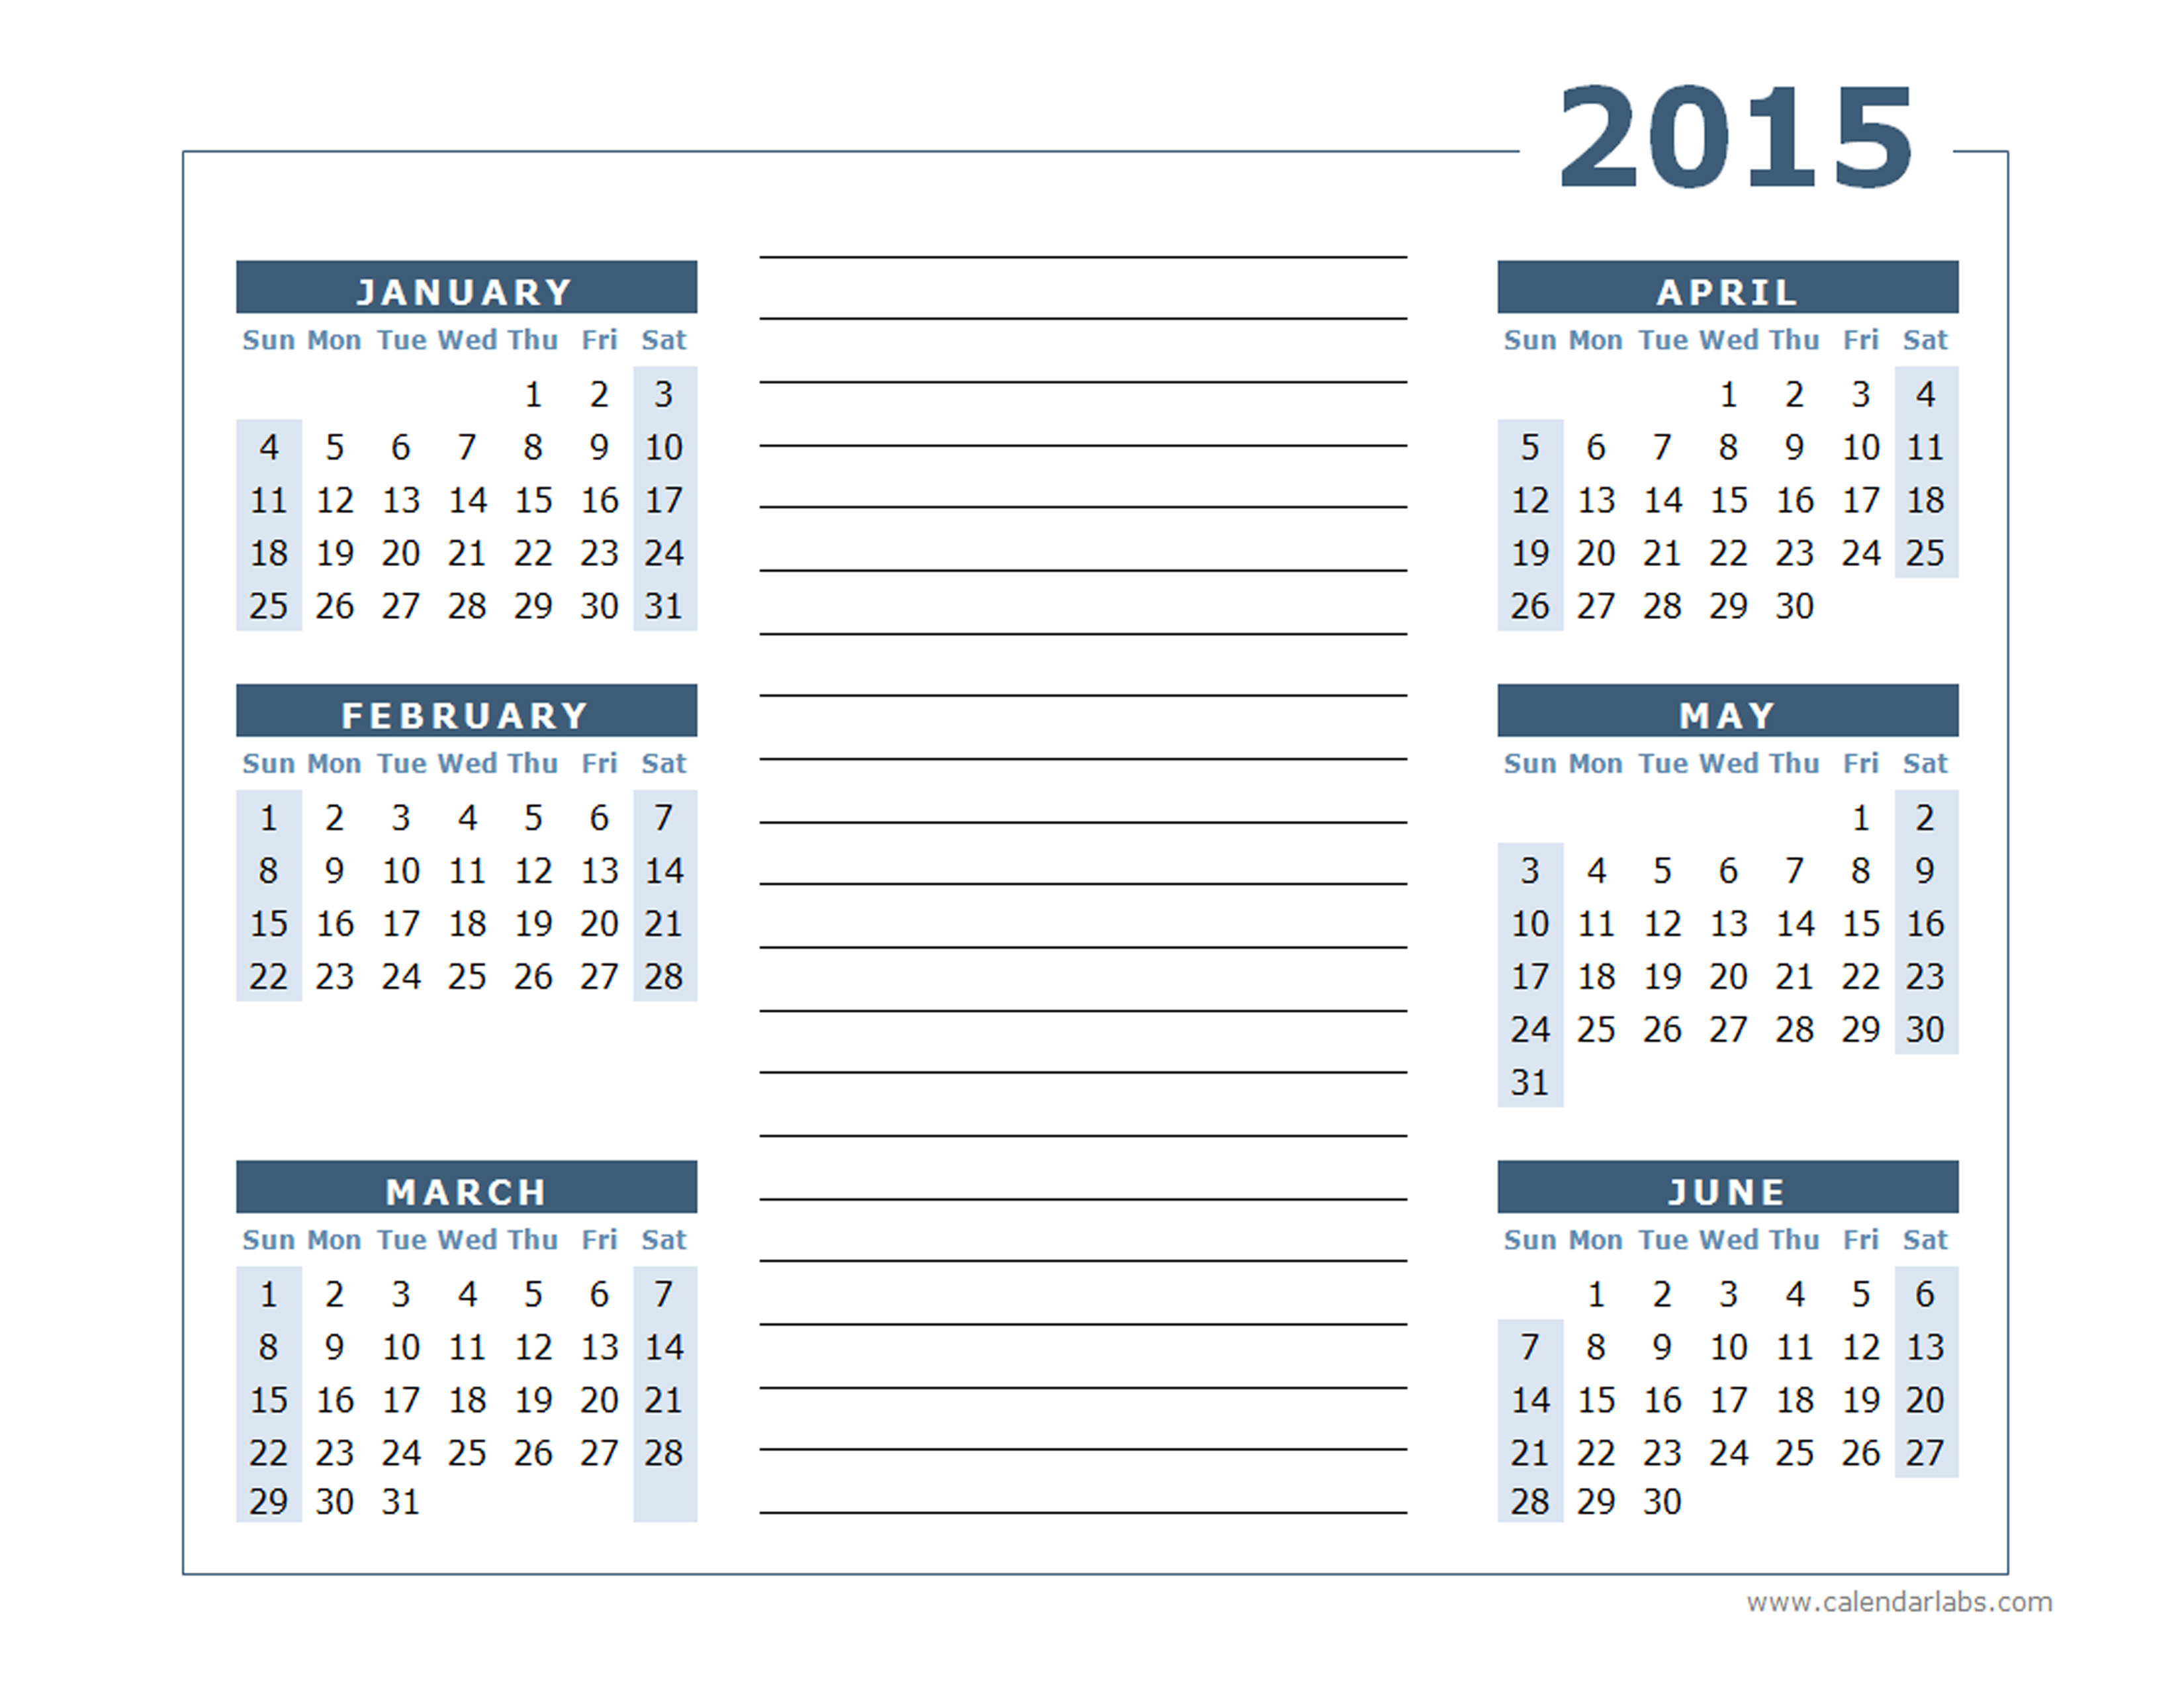 2015 yearly calendar two page